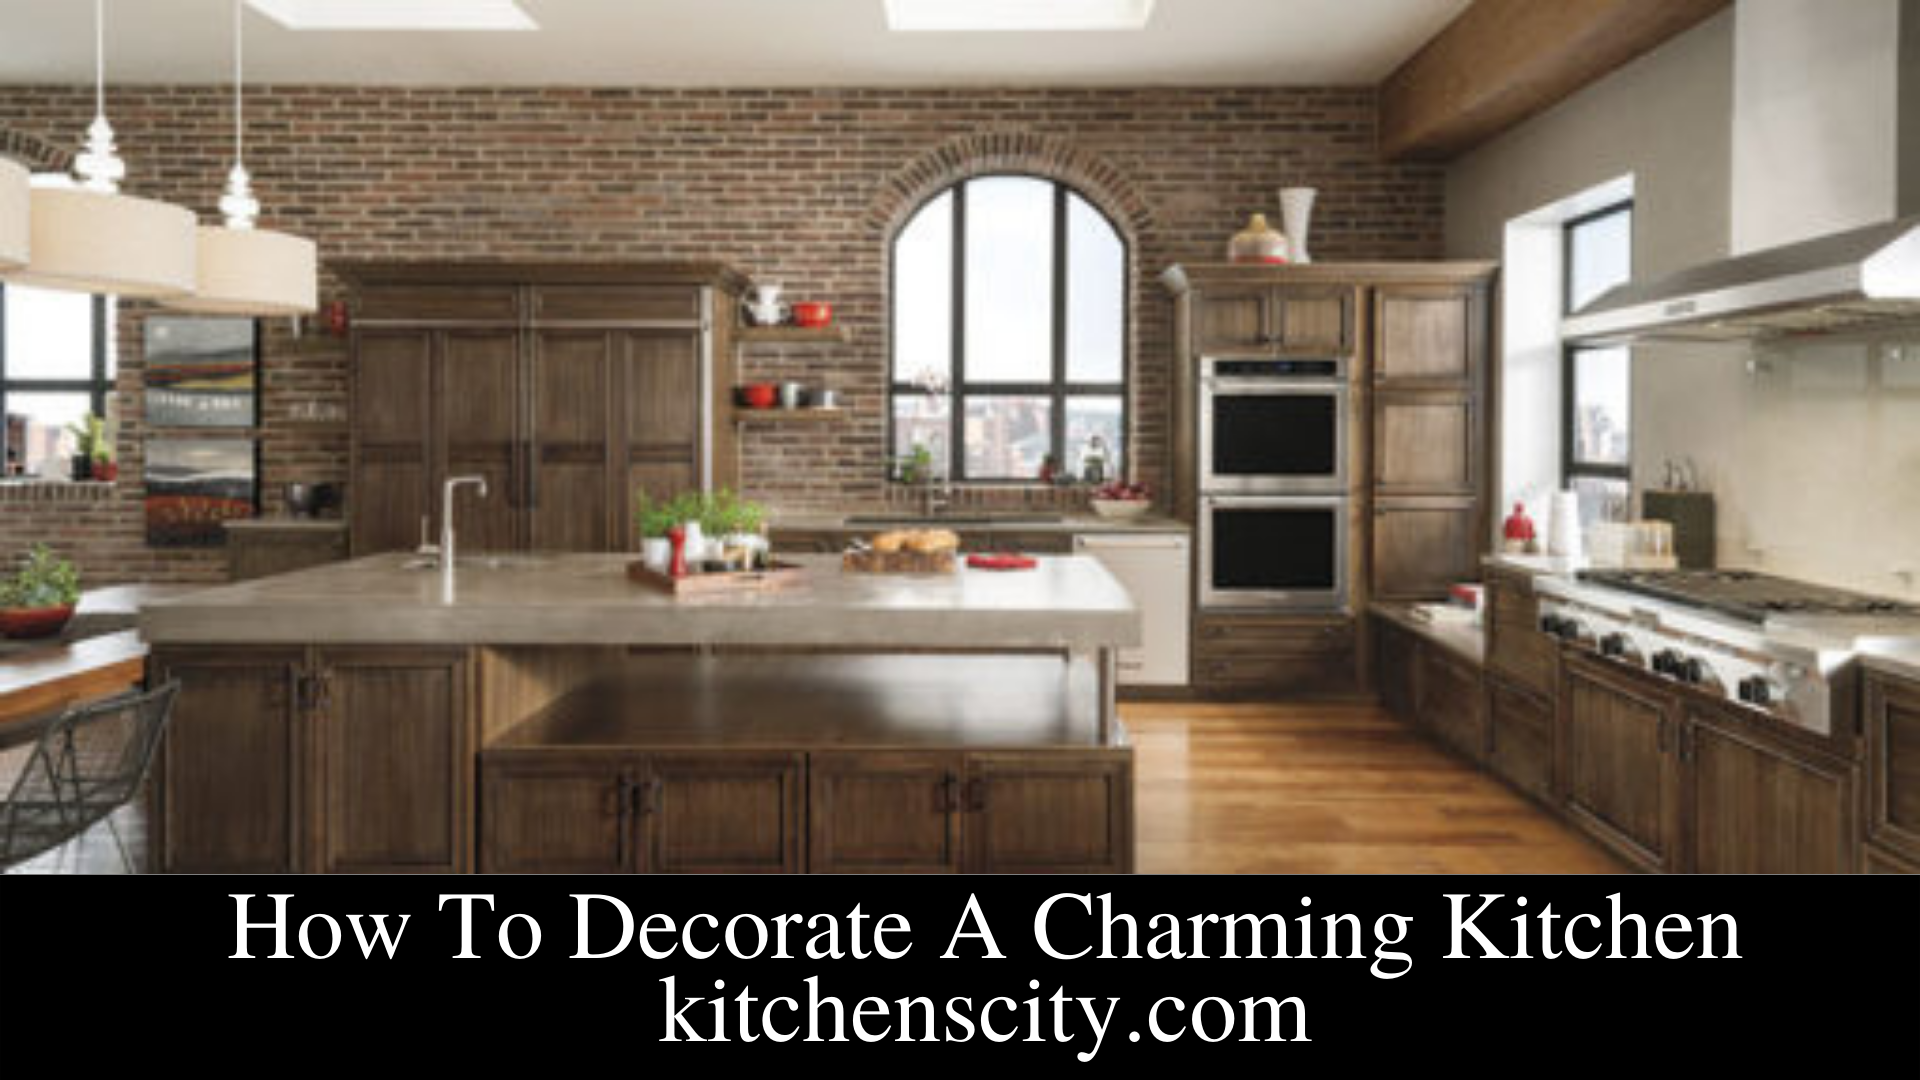 How To Decorate A Charming Kitchen